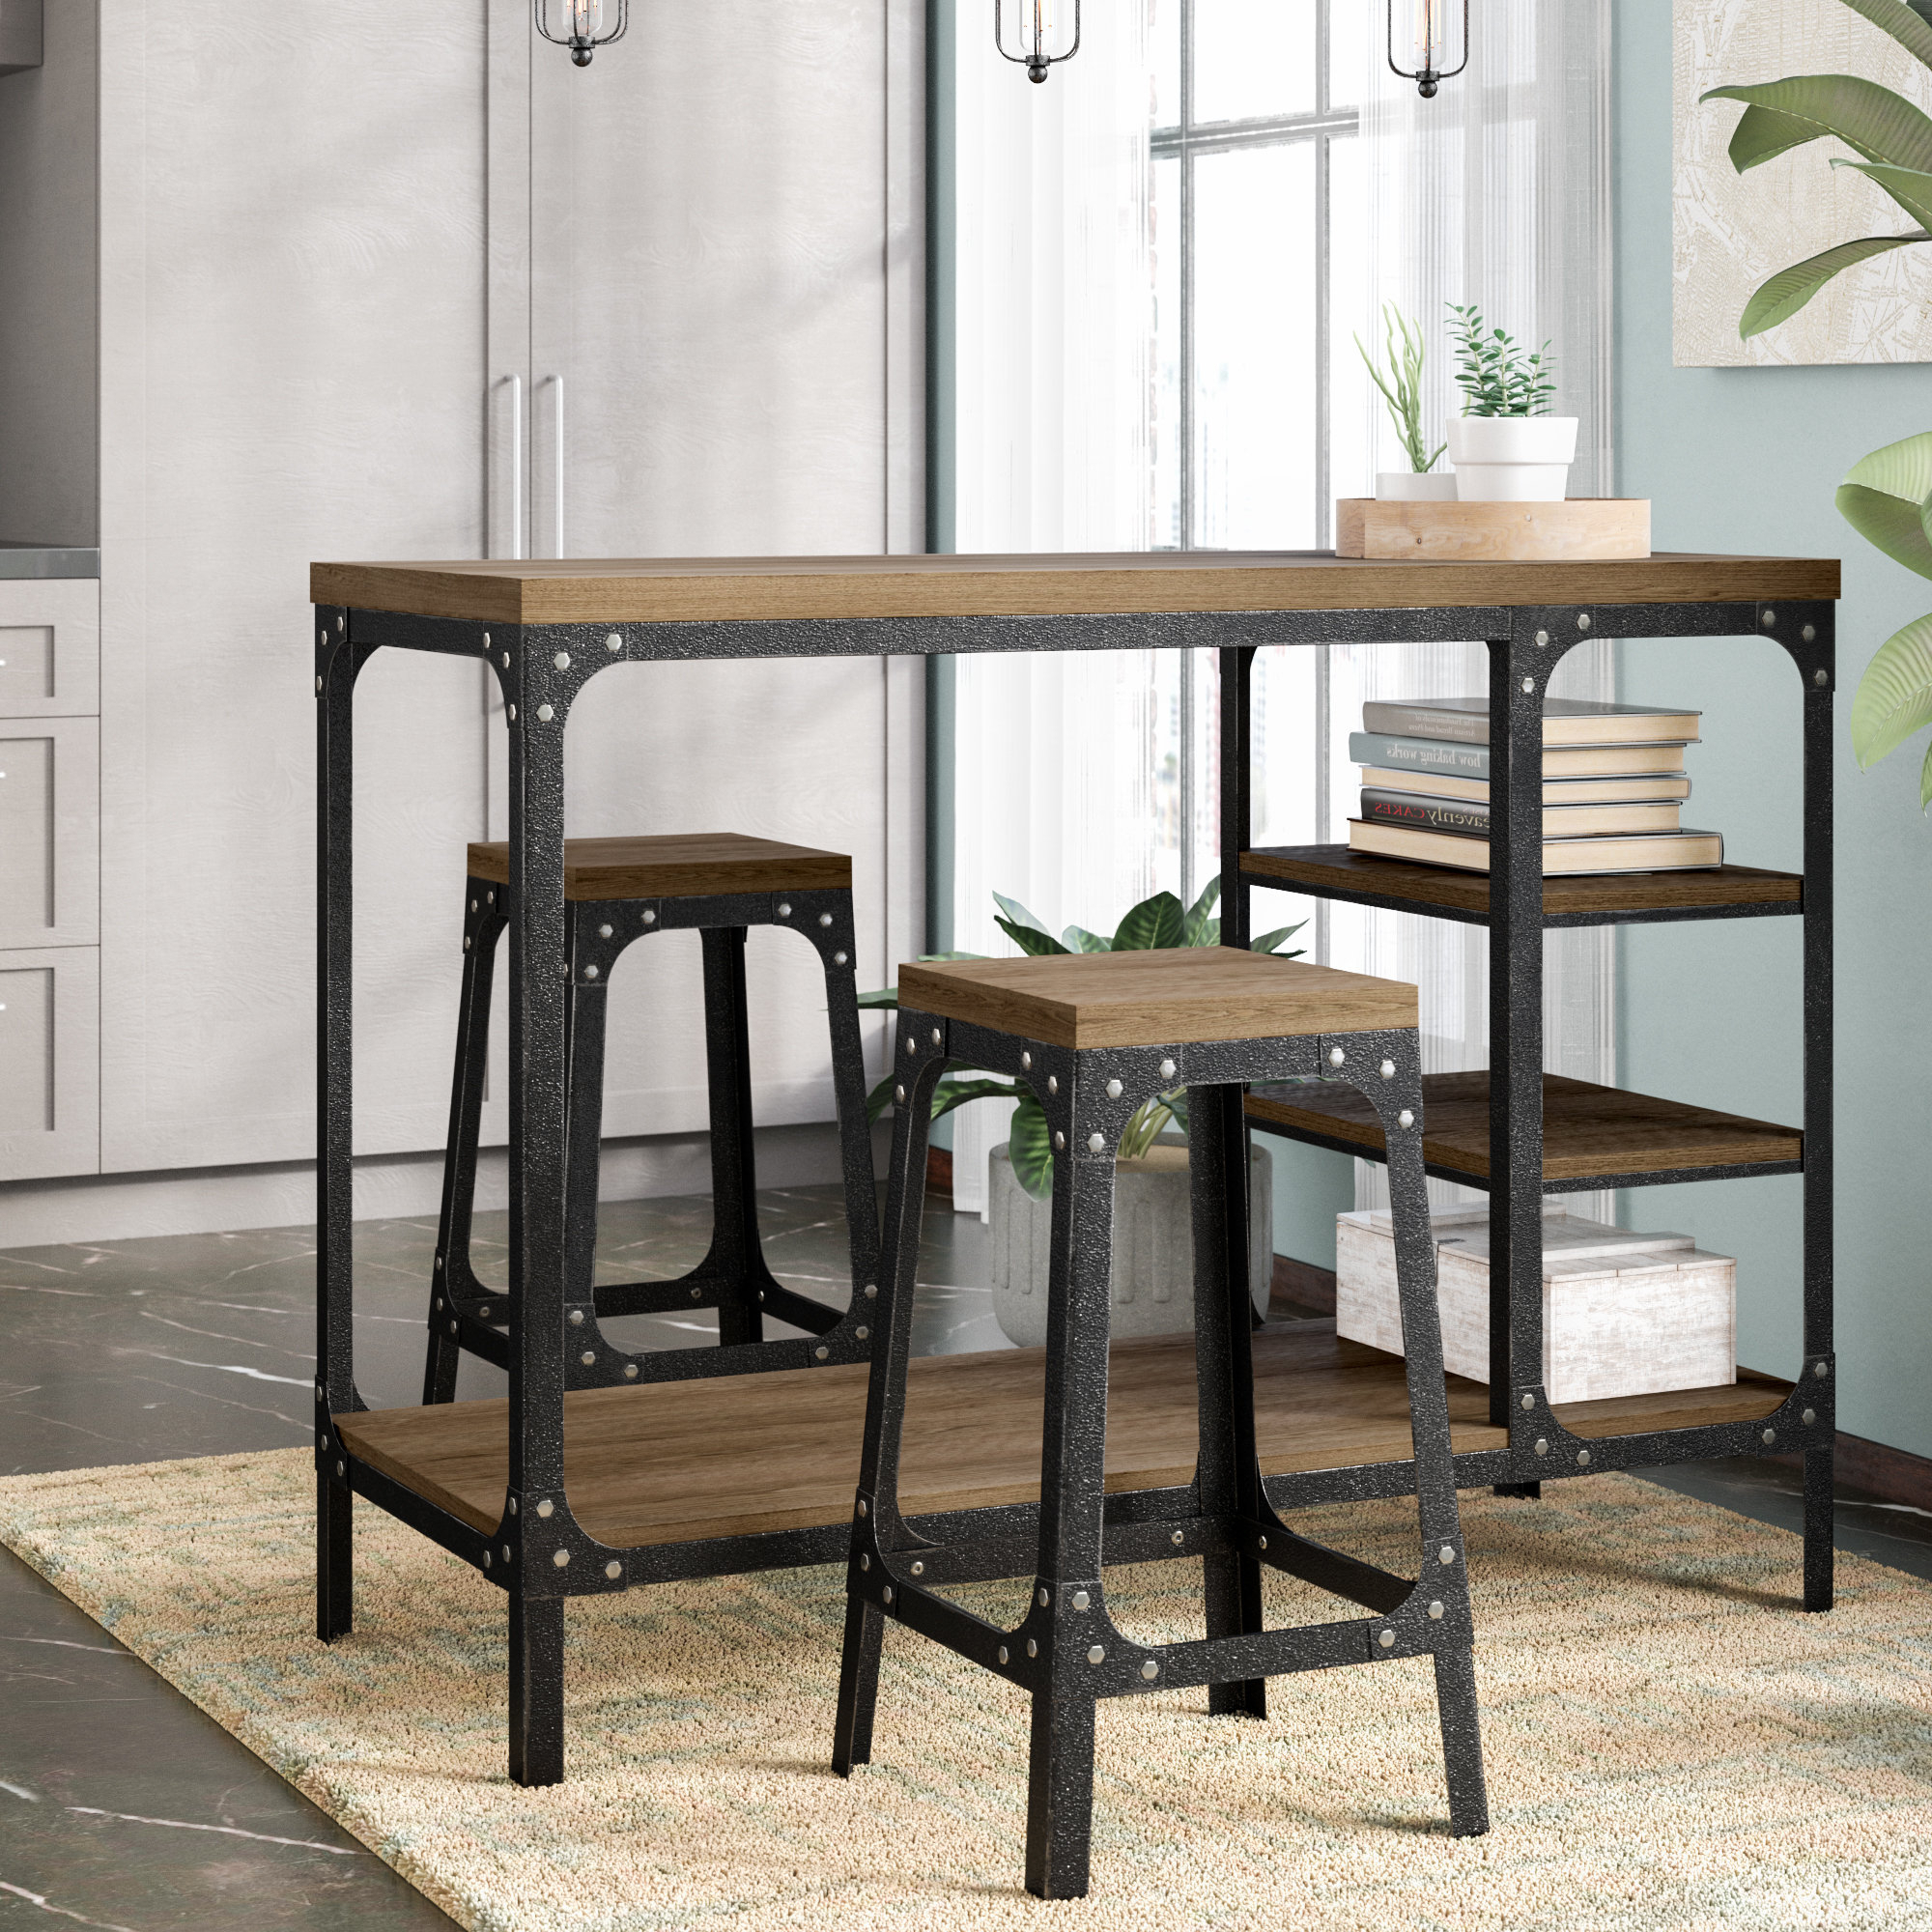 Williston Forge Terence 3 Piece Breakfast Nook Dining Set & Reviews Regarding Recent 3 Piece Breakfast Dining Sets (View 3 of 25)